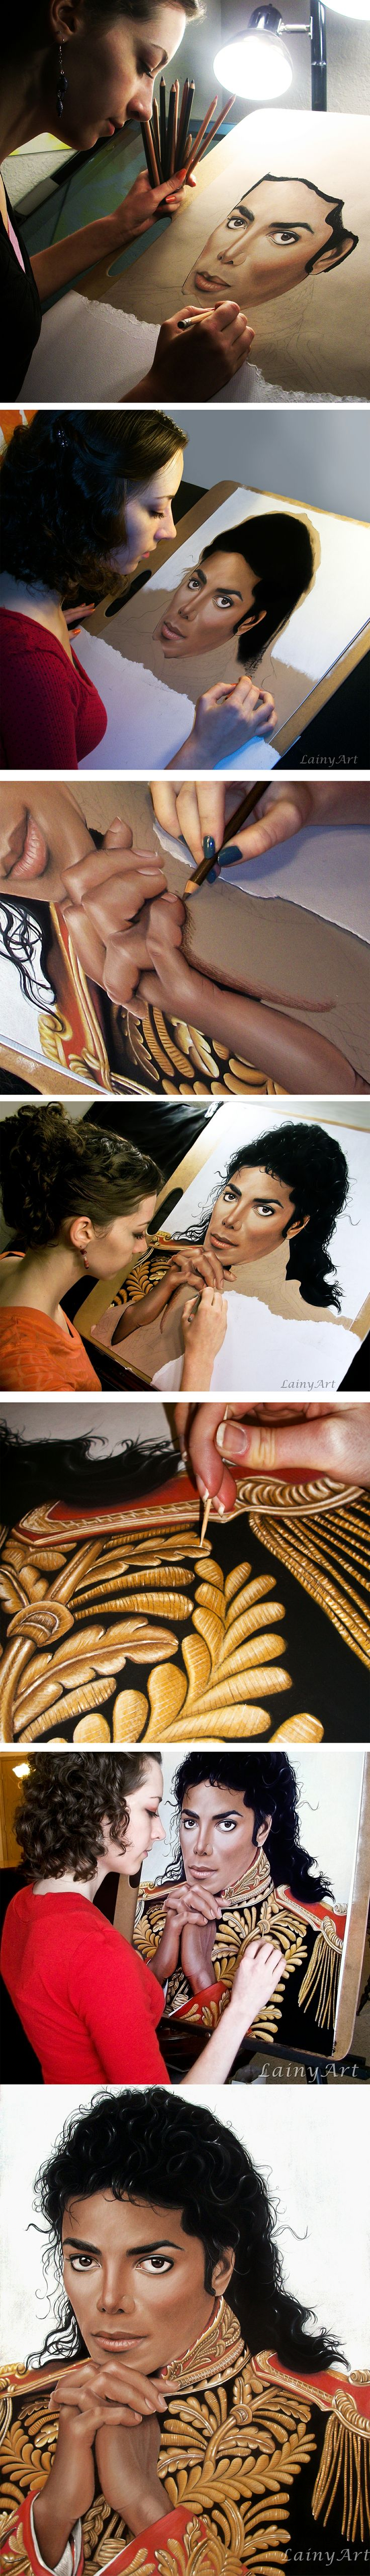 This is amazing. Funny thing is though, the artist kind of looks like Tatiana Thumbzten aka the girl from TWYMMF in the first photo 0.0